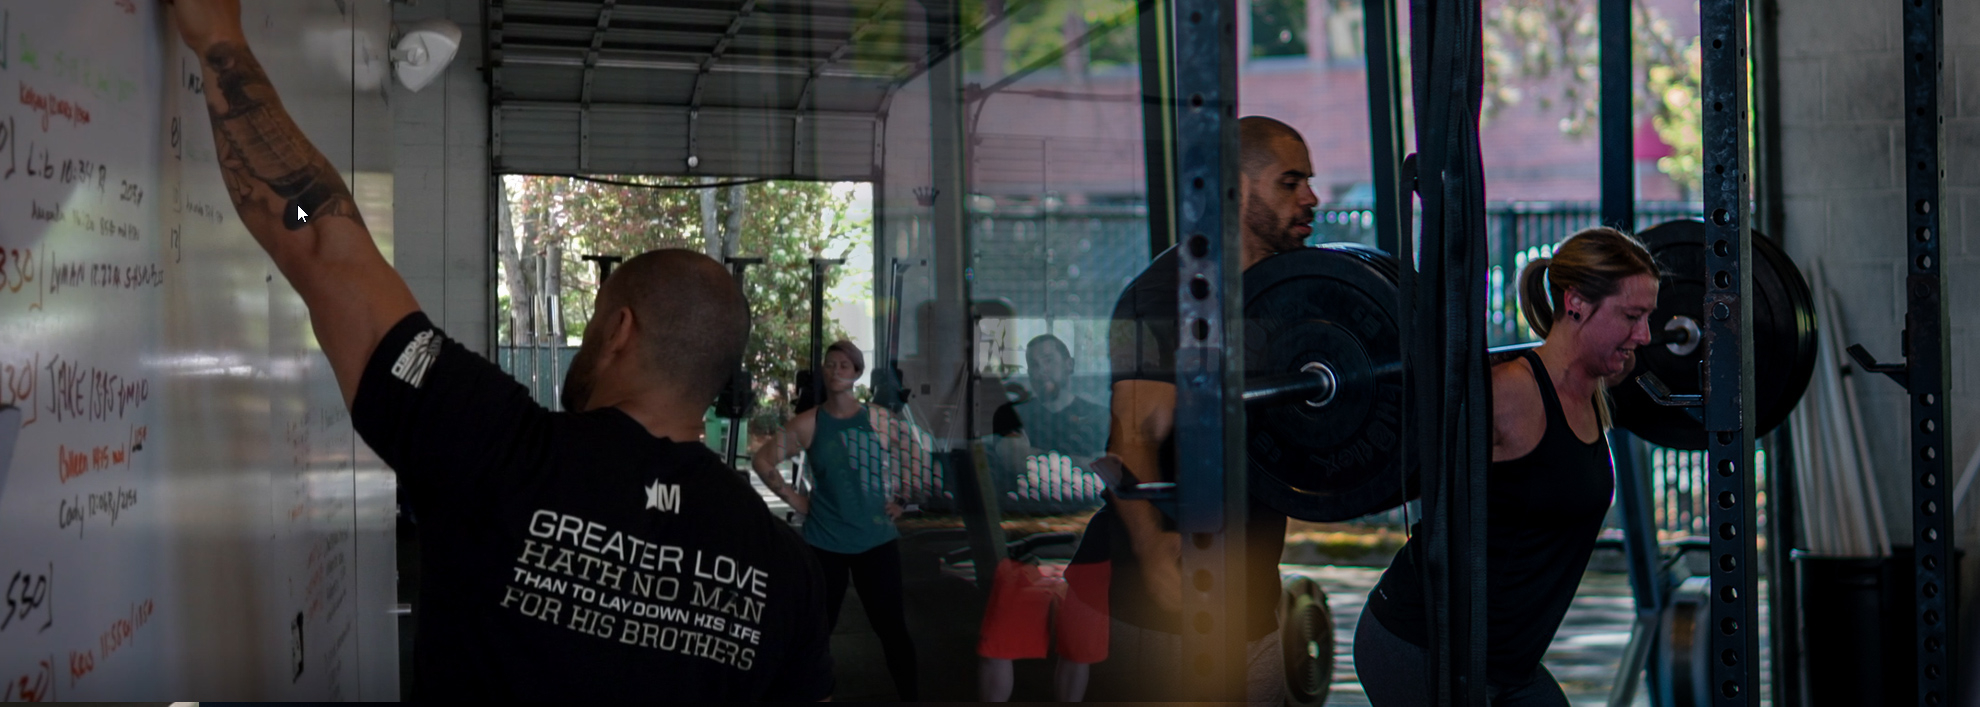 How To Join – Crossfit Immense Throughout Clackamas County Trial Schedule